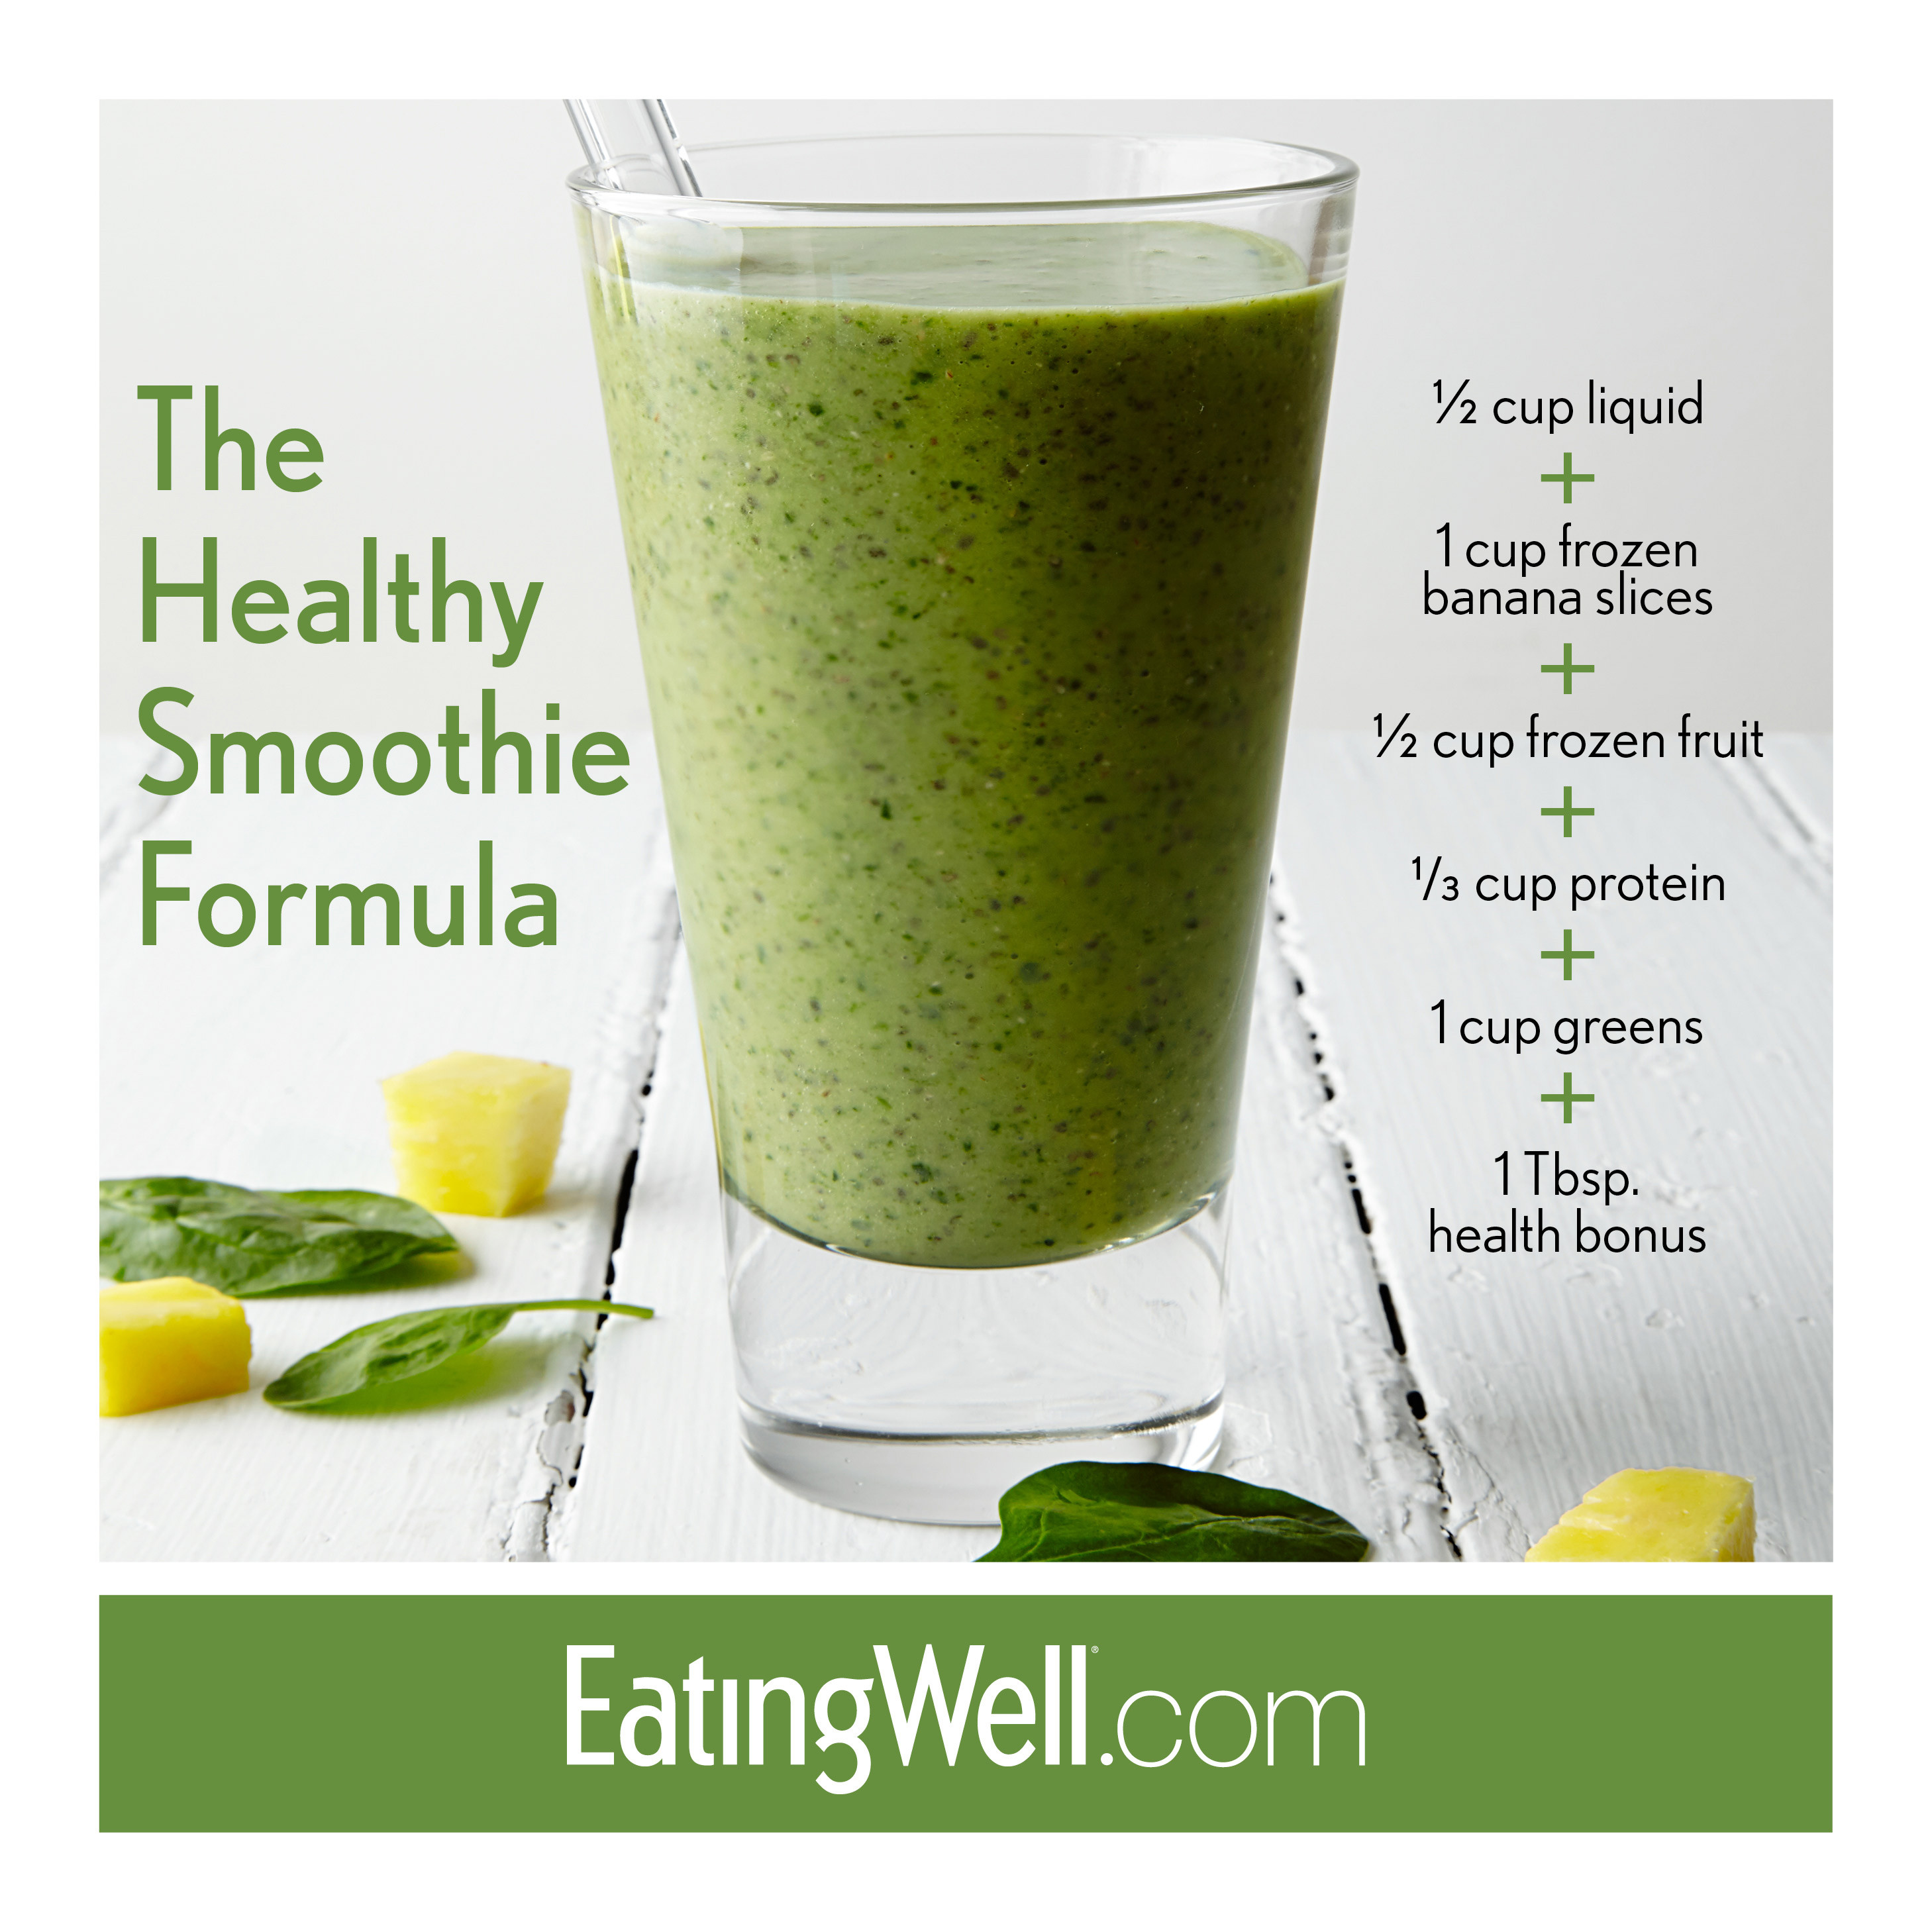 Smoothies Recipes Healthy  The Ultimate Green Smoothie Recipe EatingWell